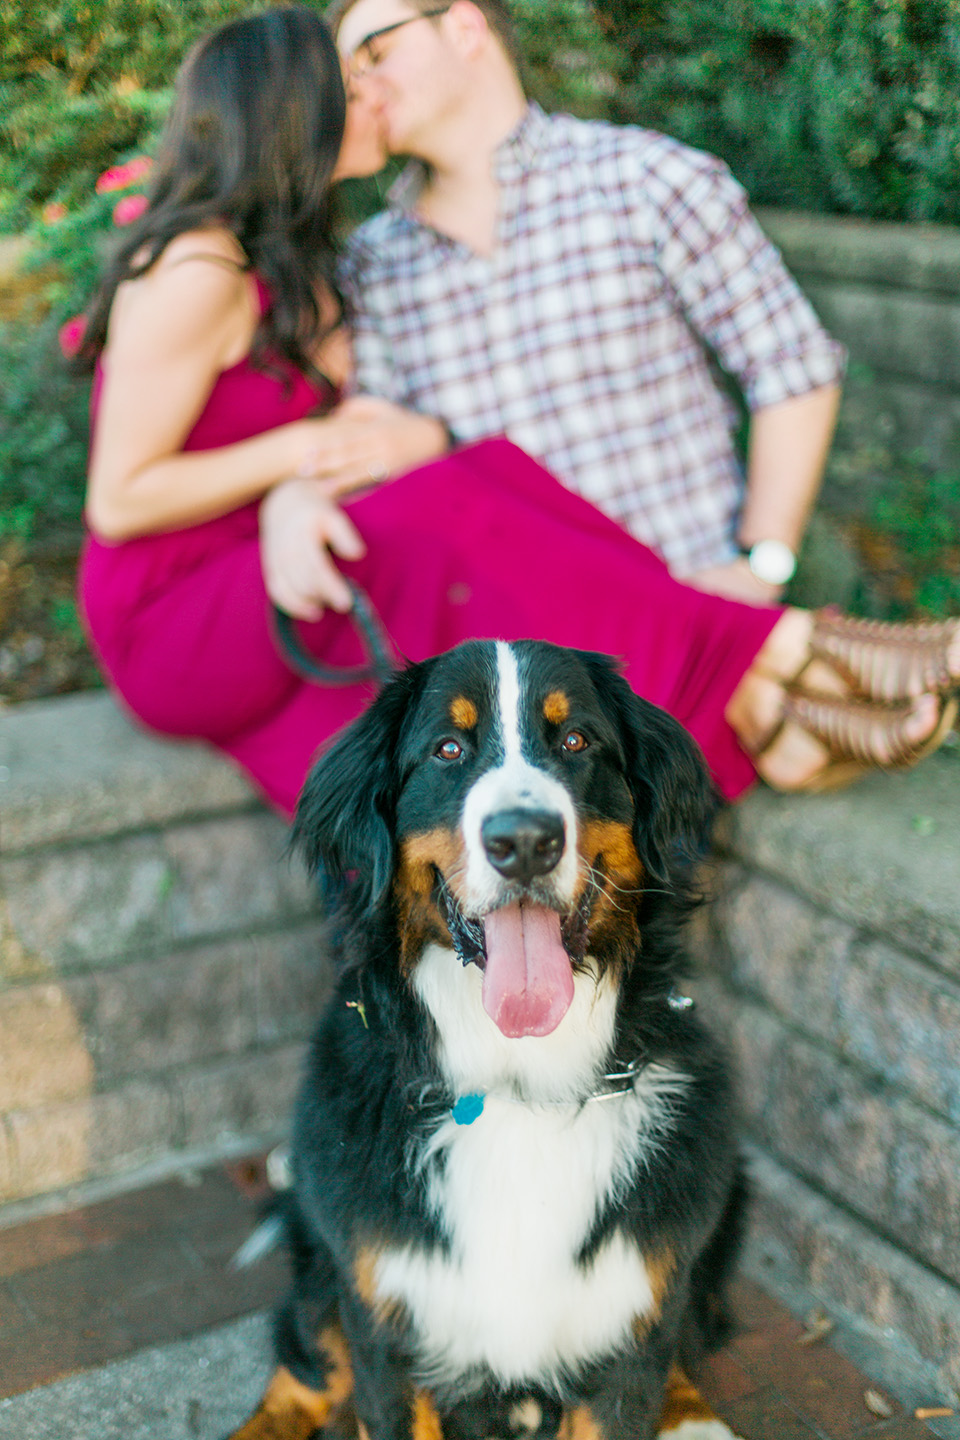 Picture of a Bernese Mountain Dog looking at the camera with his tongue sticking out.  There is an engaged couple kissing behind the dog in downtown Orlando, Florida.